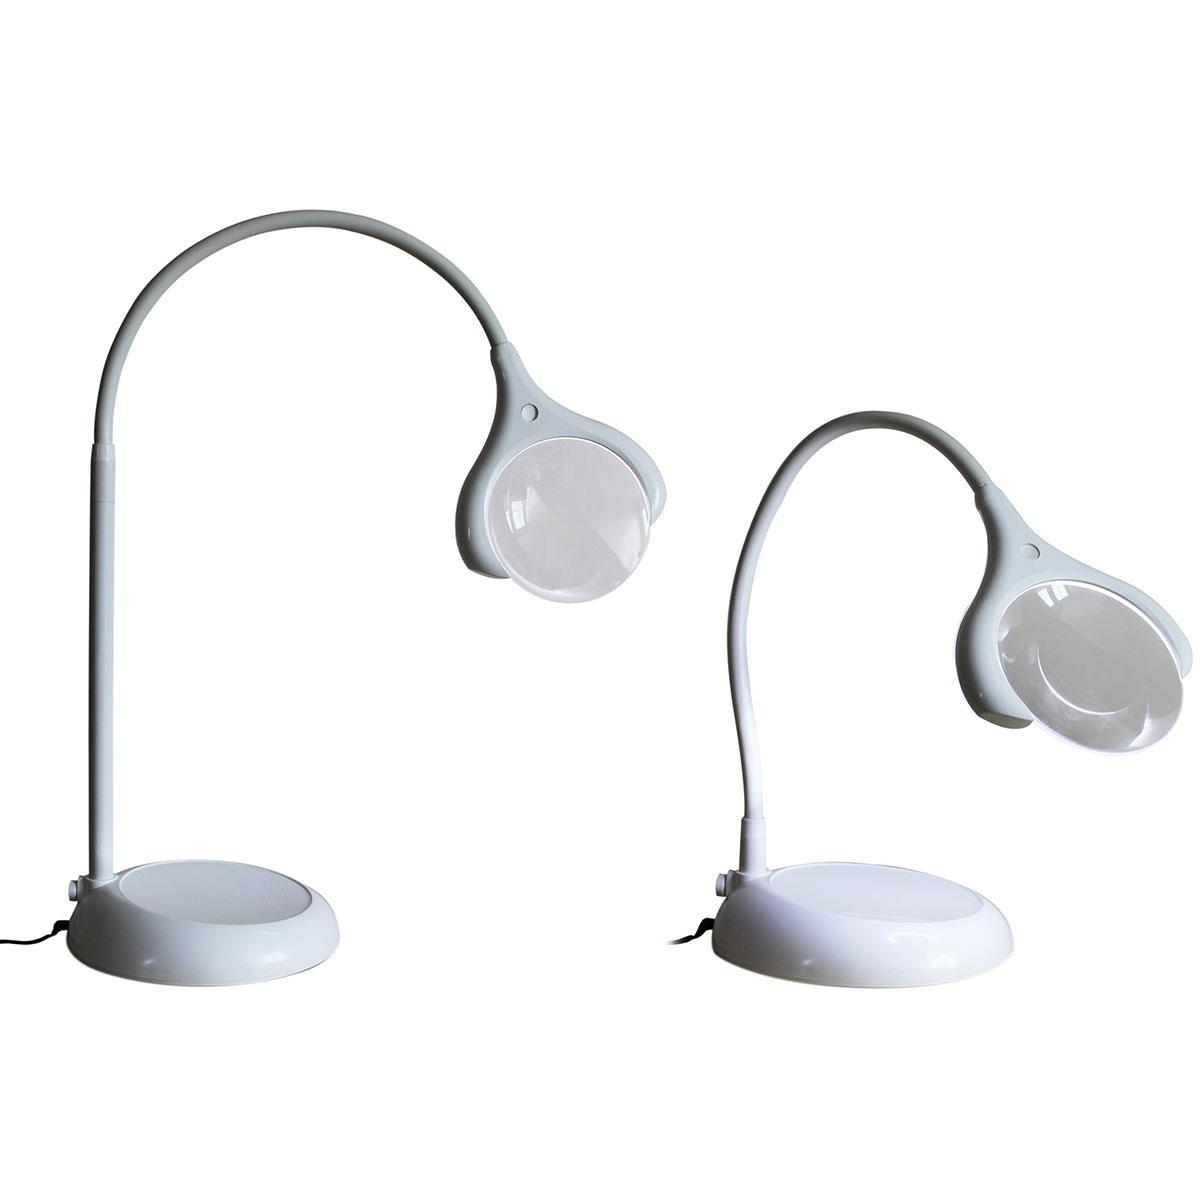 Magnificent floor table led magnifying lamp white for Magnifier lamp for crafts